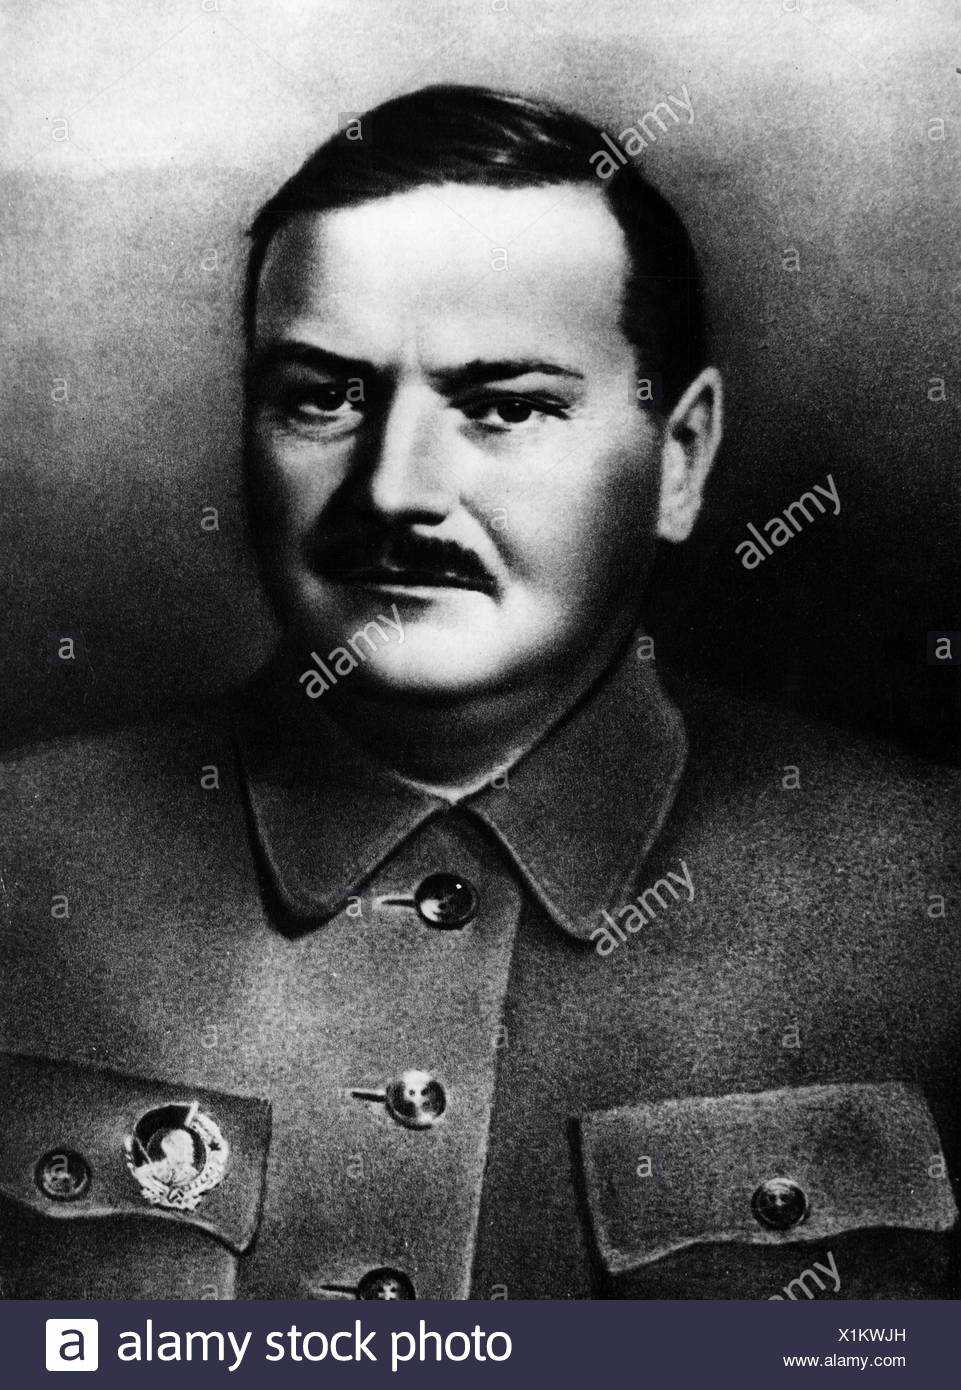 Zhdanov, Andrei Alexandrovich, 26.2.1896 - 31.8.1948, soviet politician (CPSU), portrait, 1930s, Additional-Rights-Clearances-NA - Stock Image